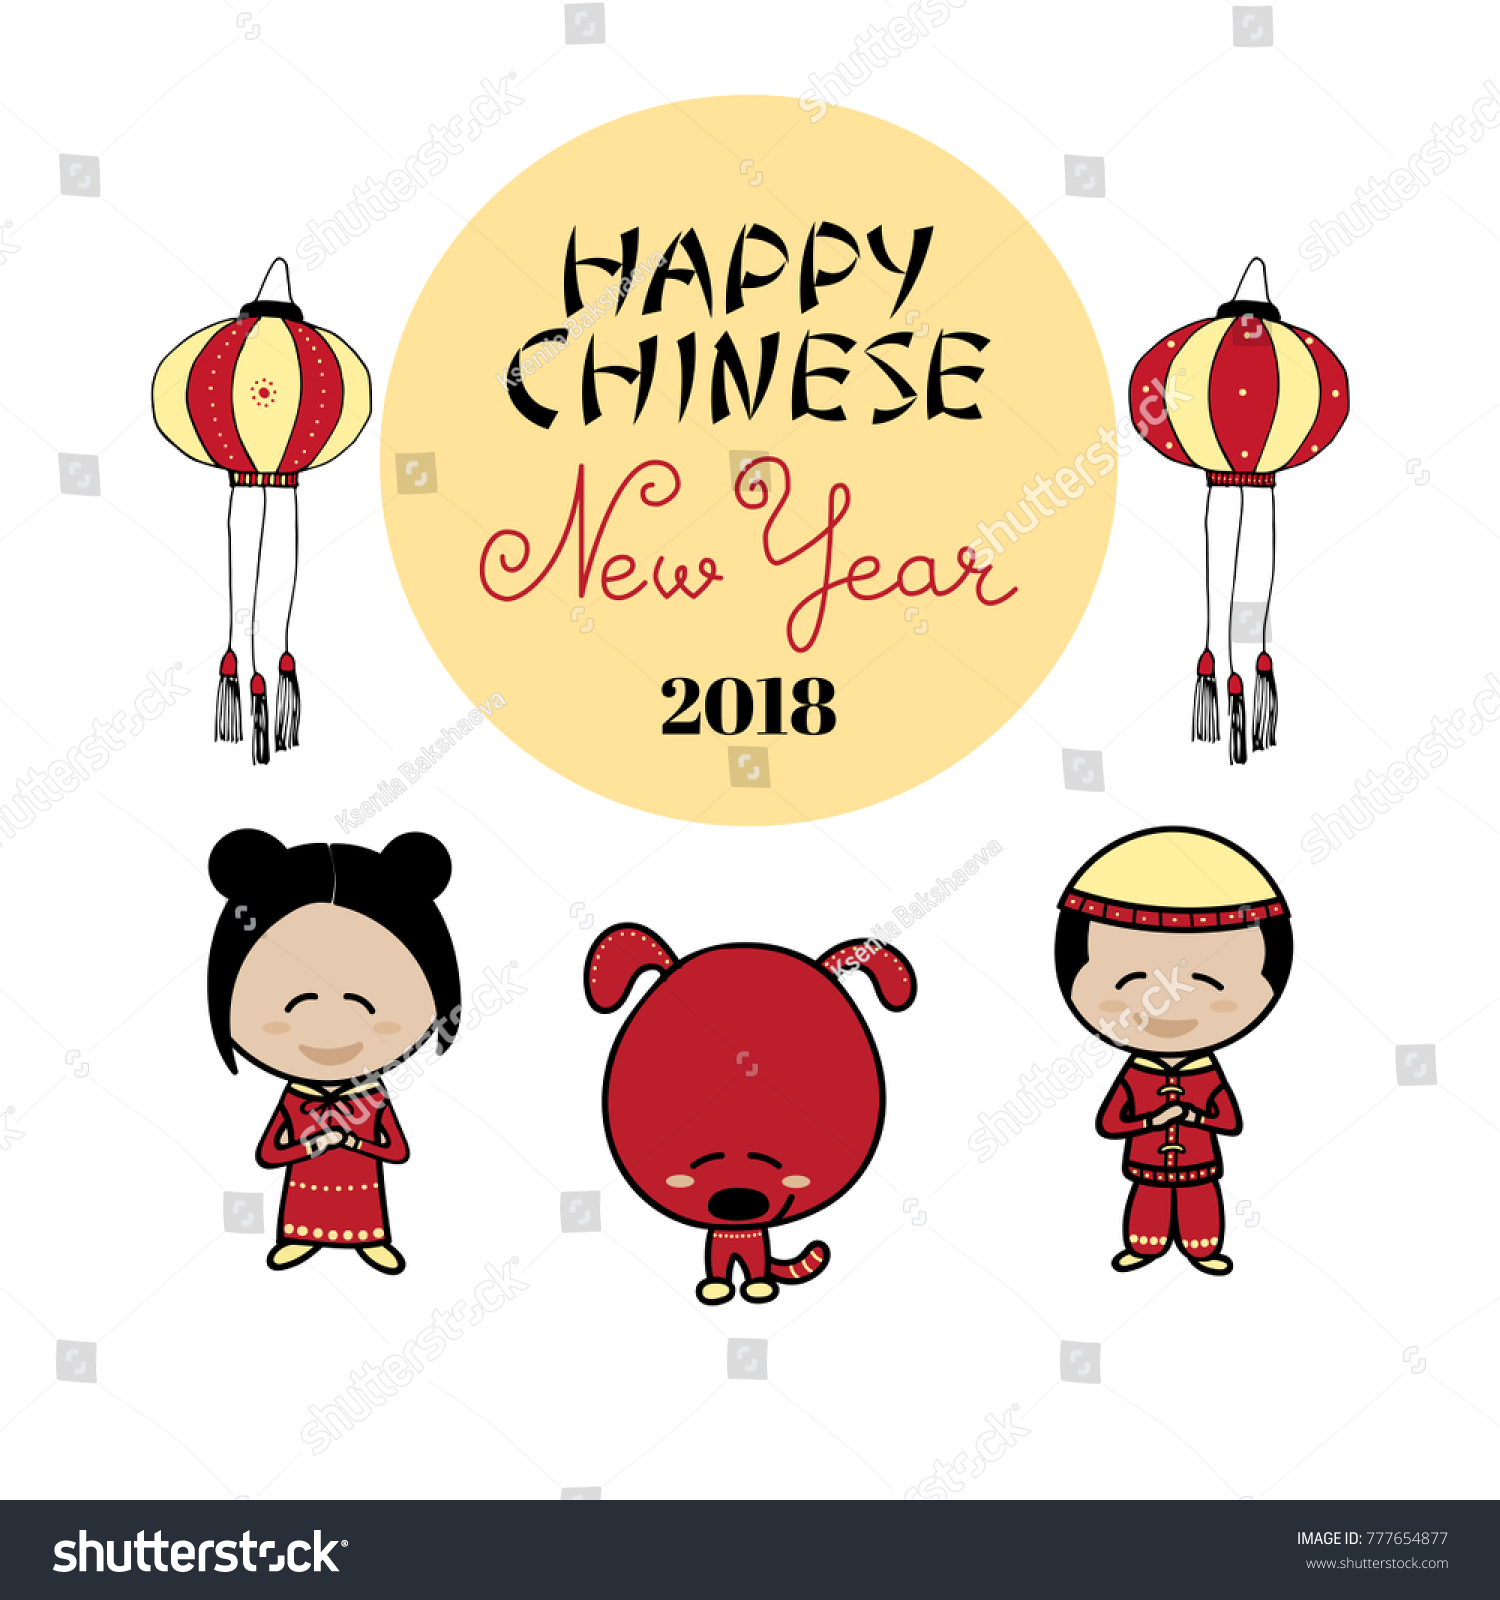 Chinese new year hand drawn colorful stock vector 777654877 chinese new year hand drawn colorful symbols such as lanterns dog chinese kids and buycottarizona